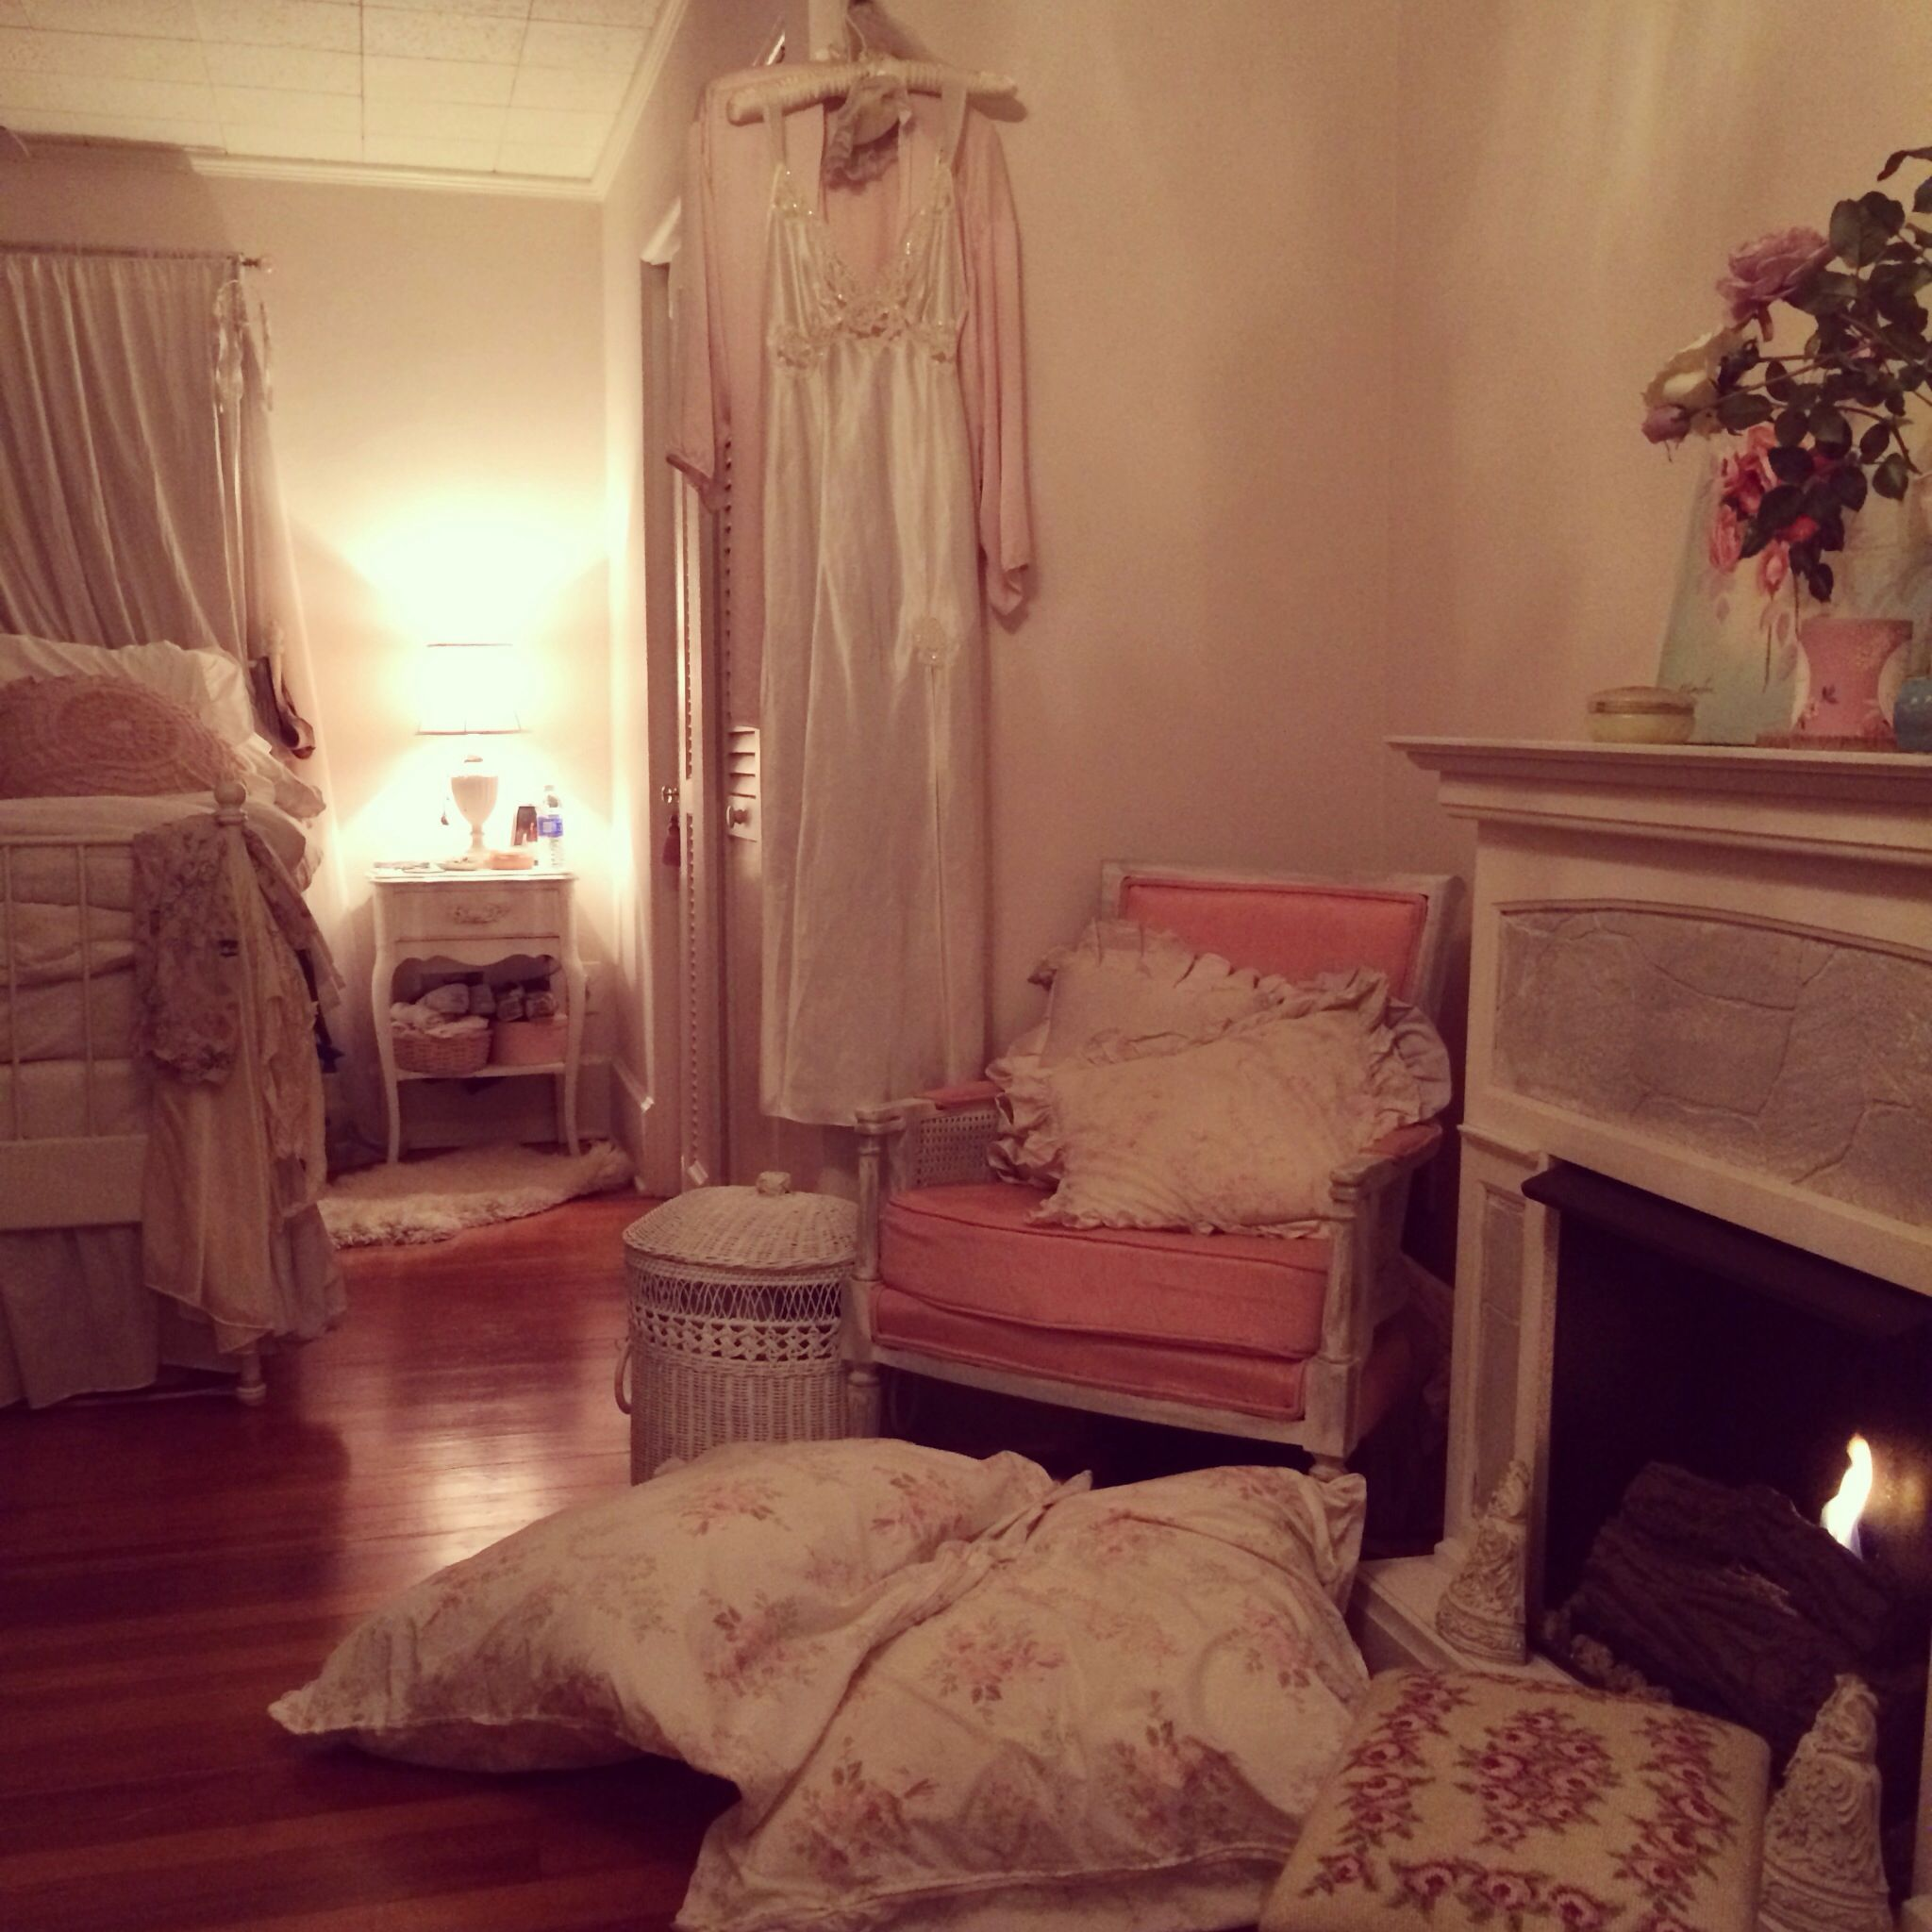 33 Sweet Shabby Chic Bedroom Décor Ideas: Cozy, Boudoir Bedroom In Soft Pink.